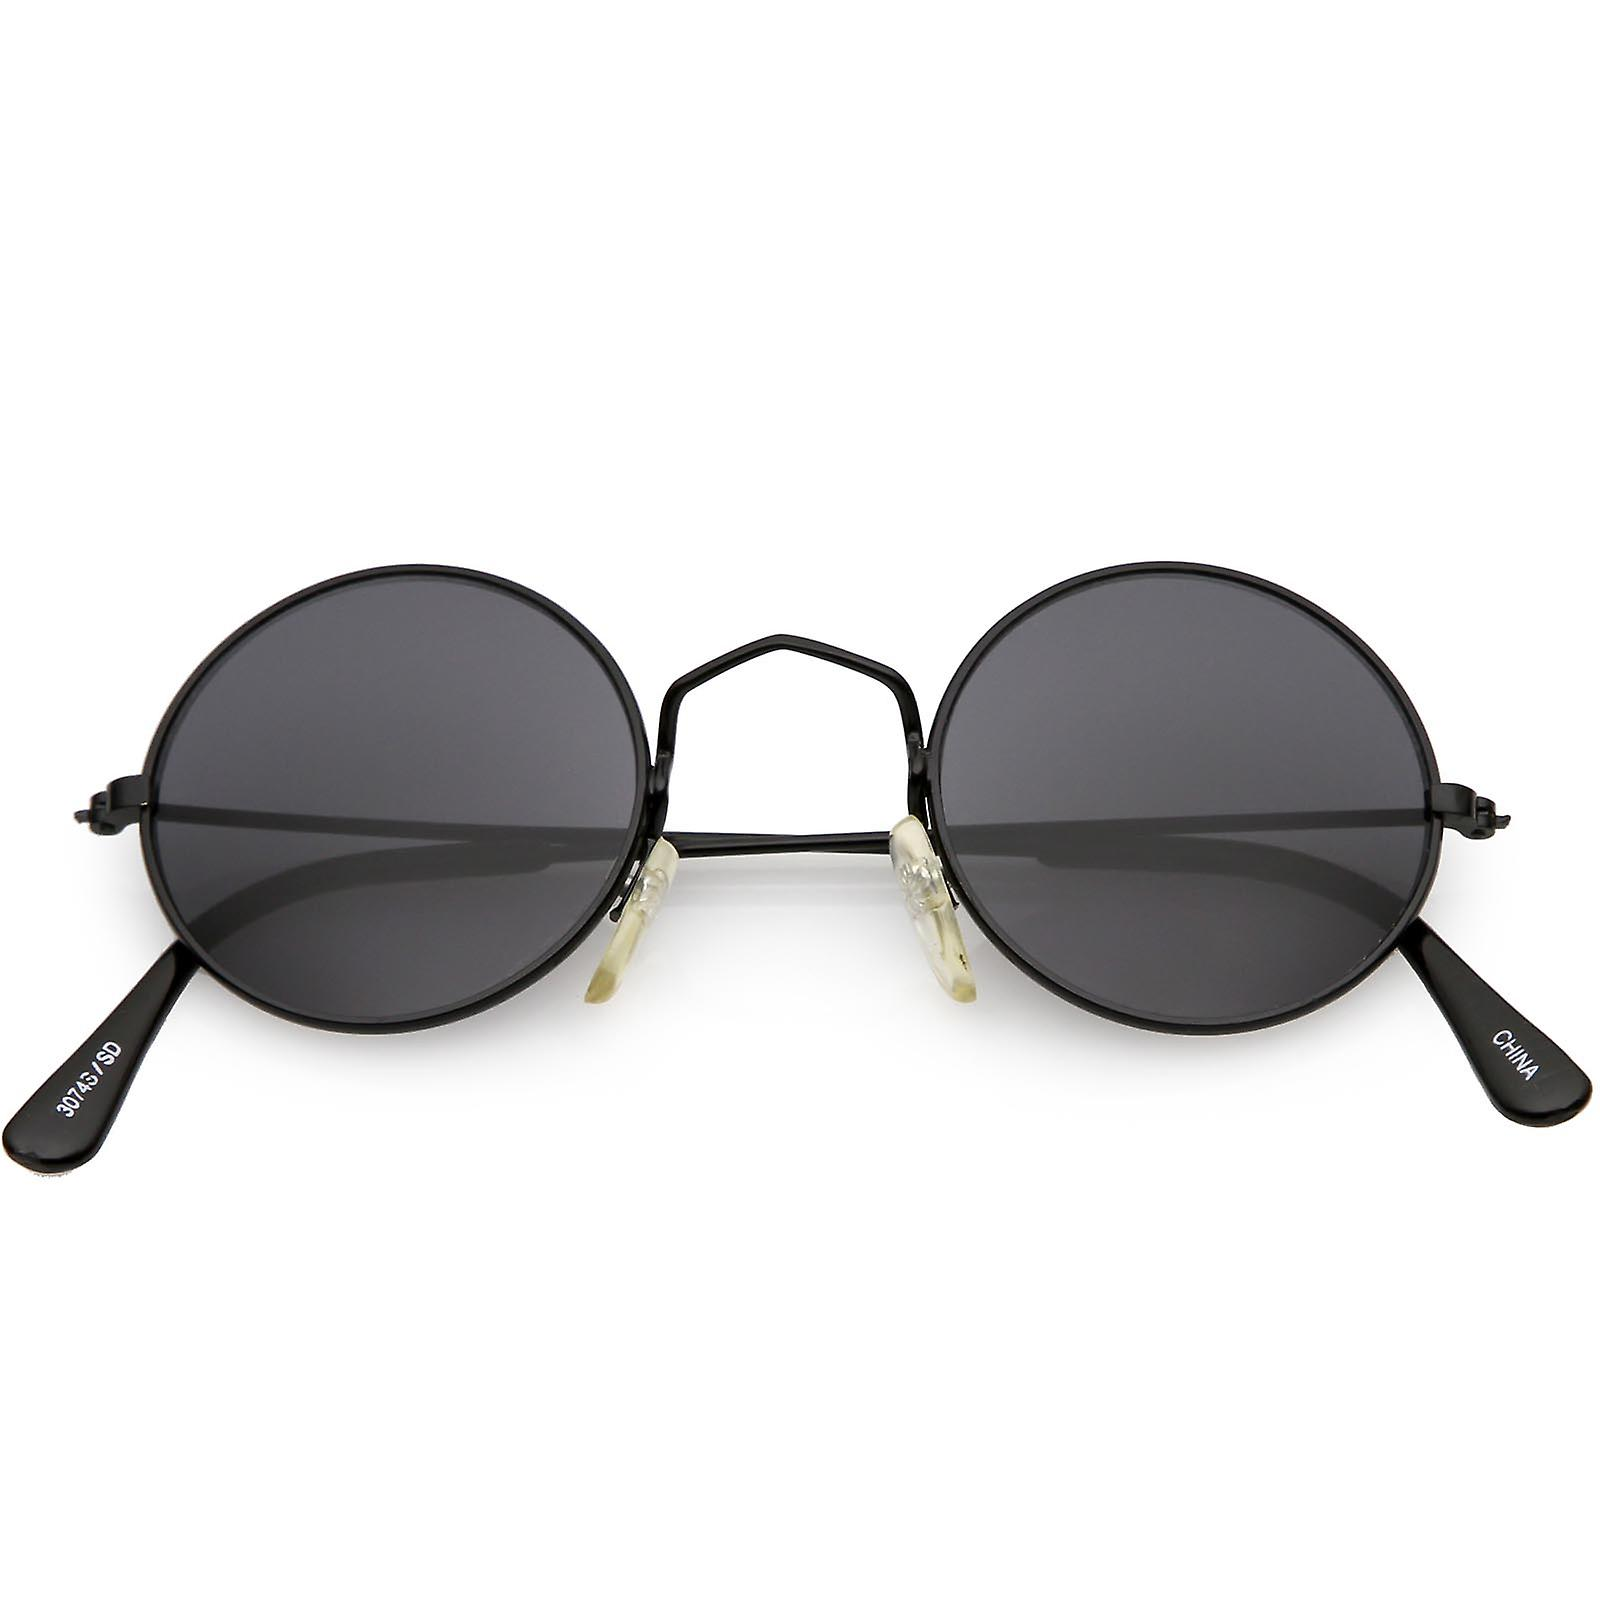 True Vintage Small Thin Frame Circle Sunglasses Neutral Colored Lens 42mm 3acb4824d7266